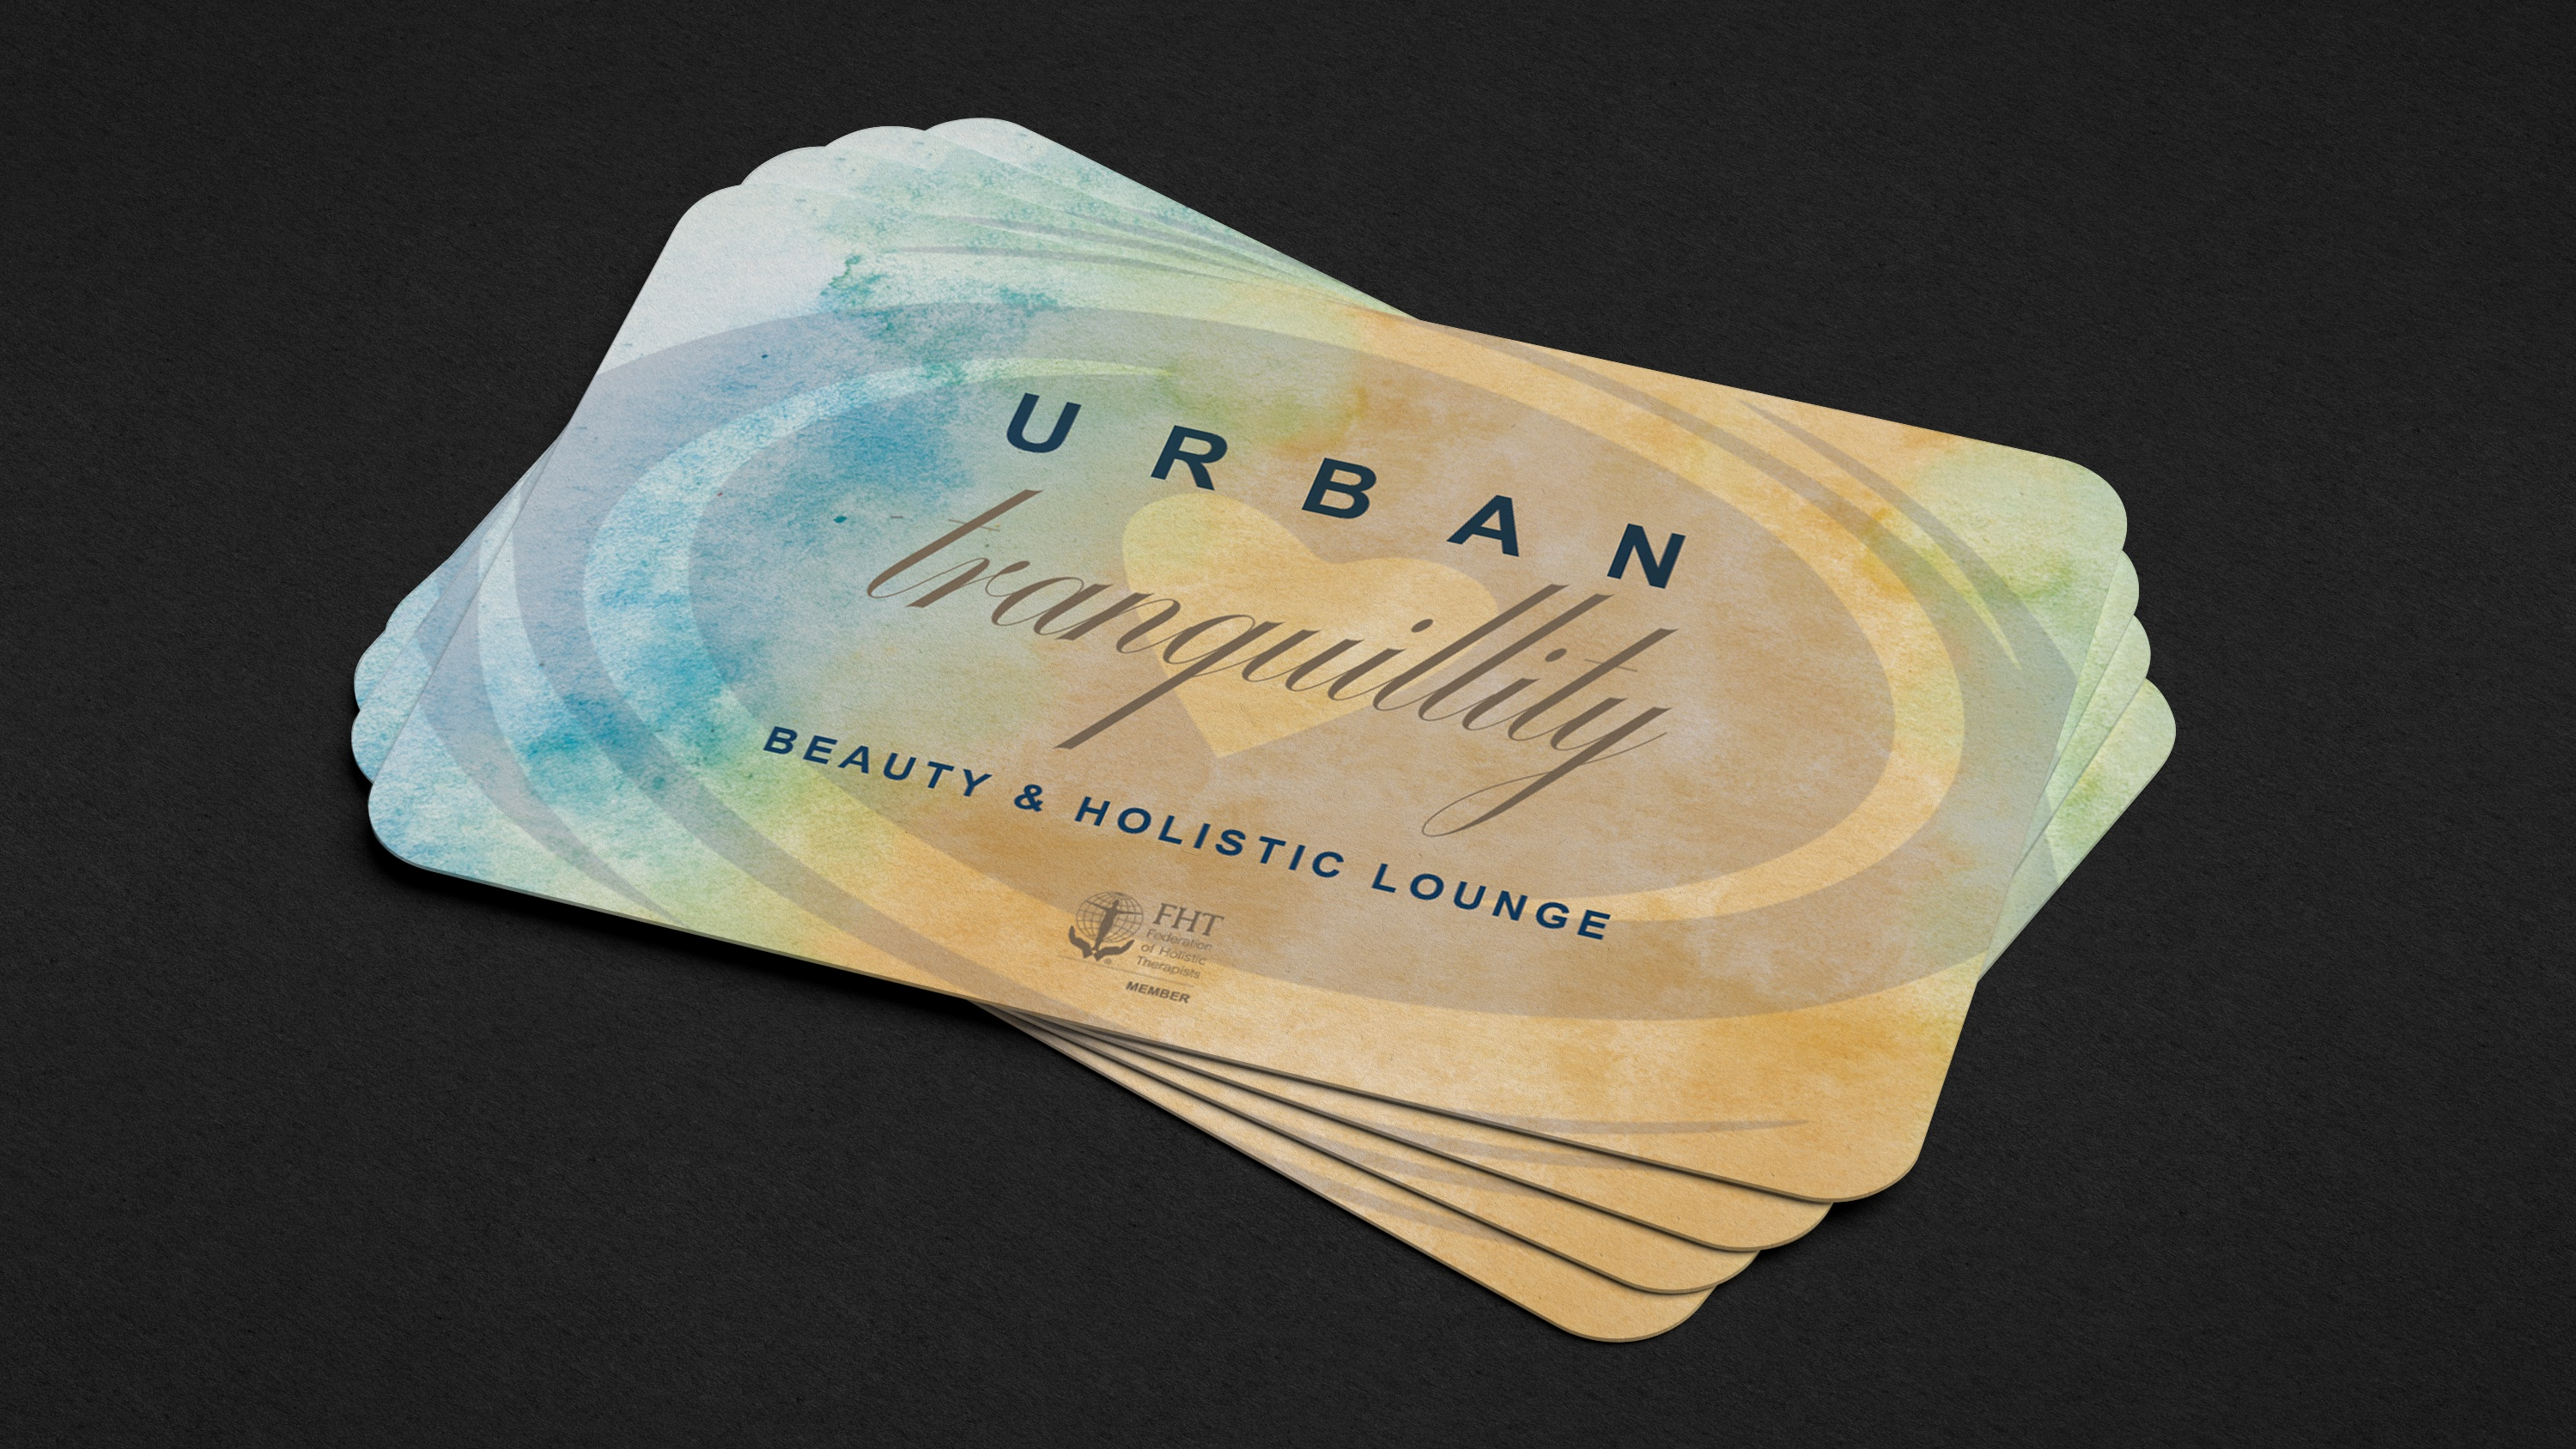 Urban Tranquility business cards